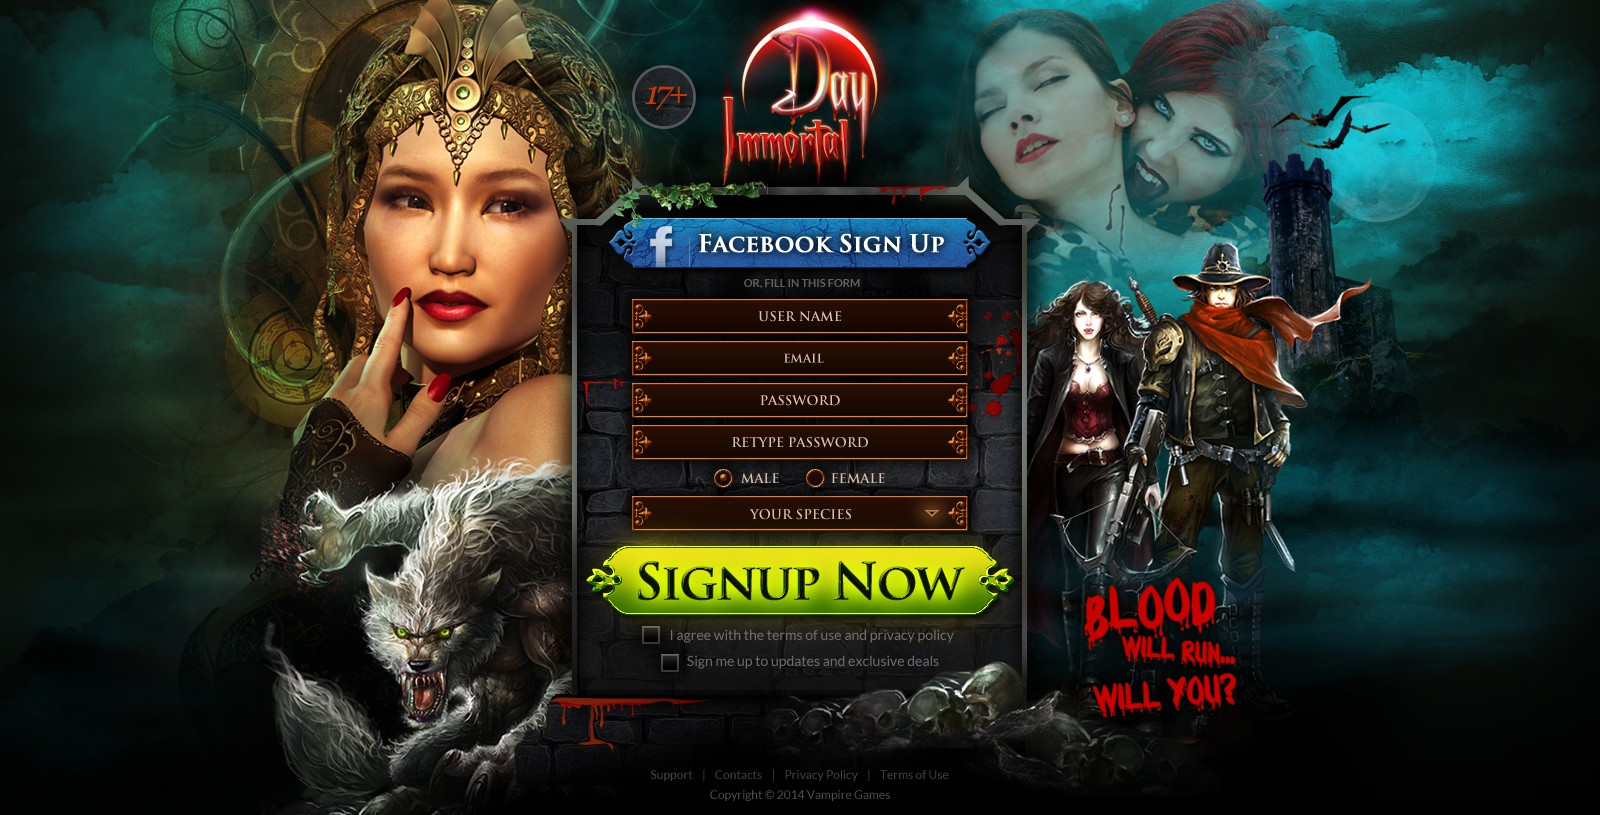 Create a high conversion landing page for a Vampire-based Online Game